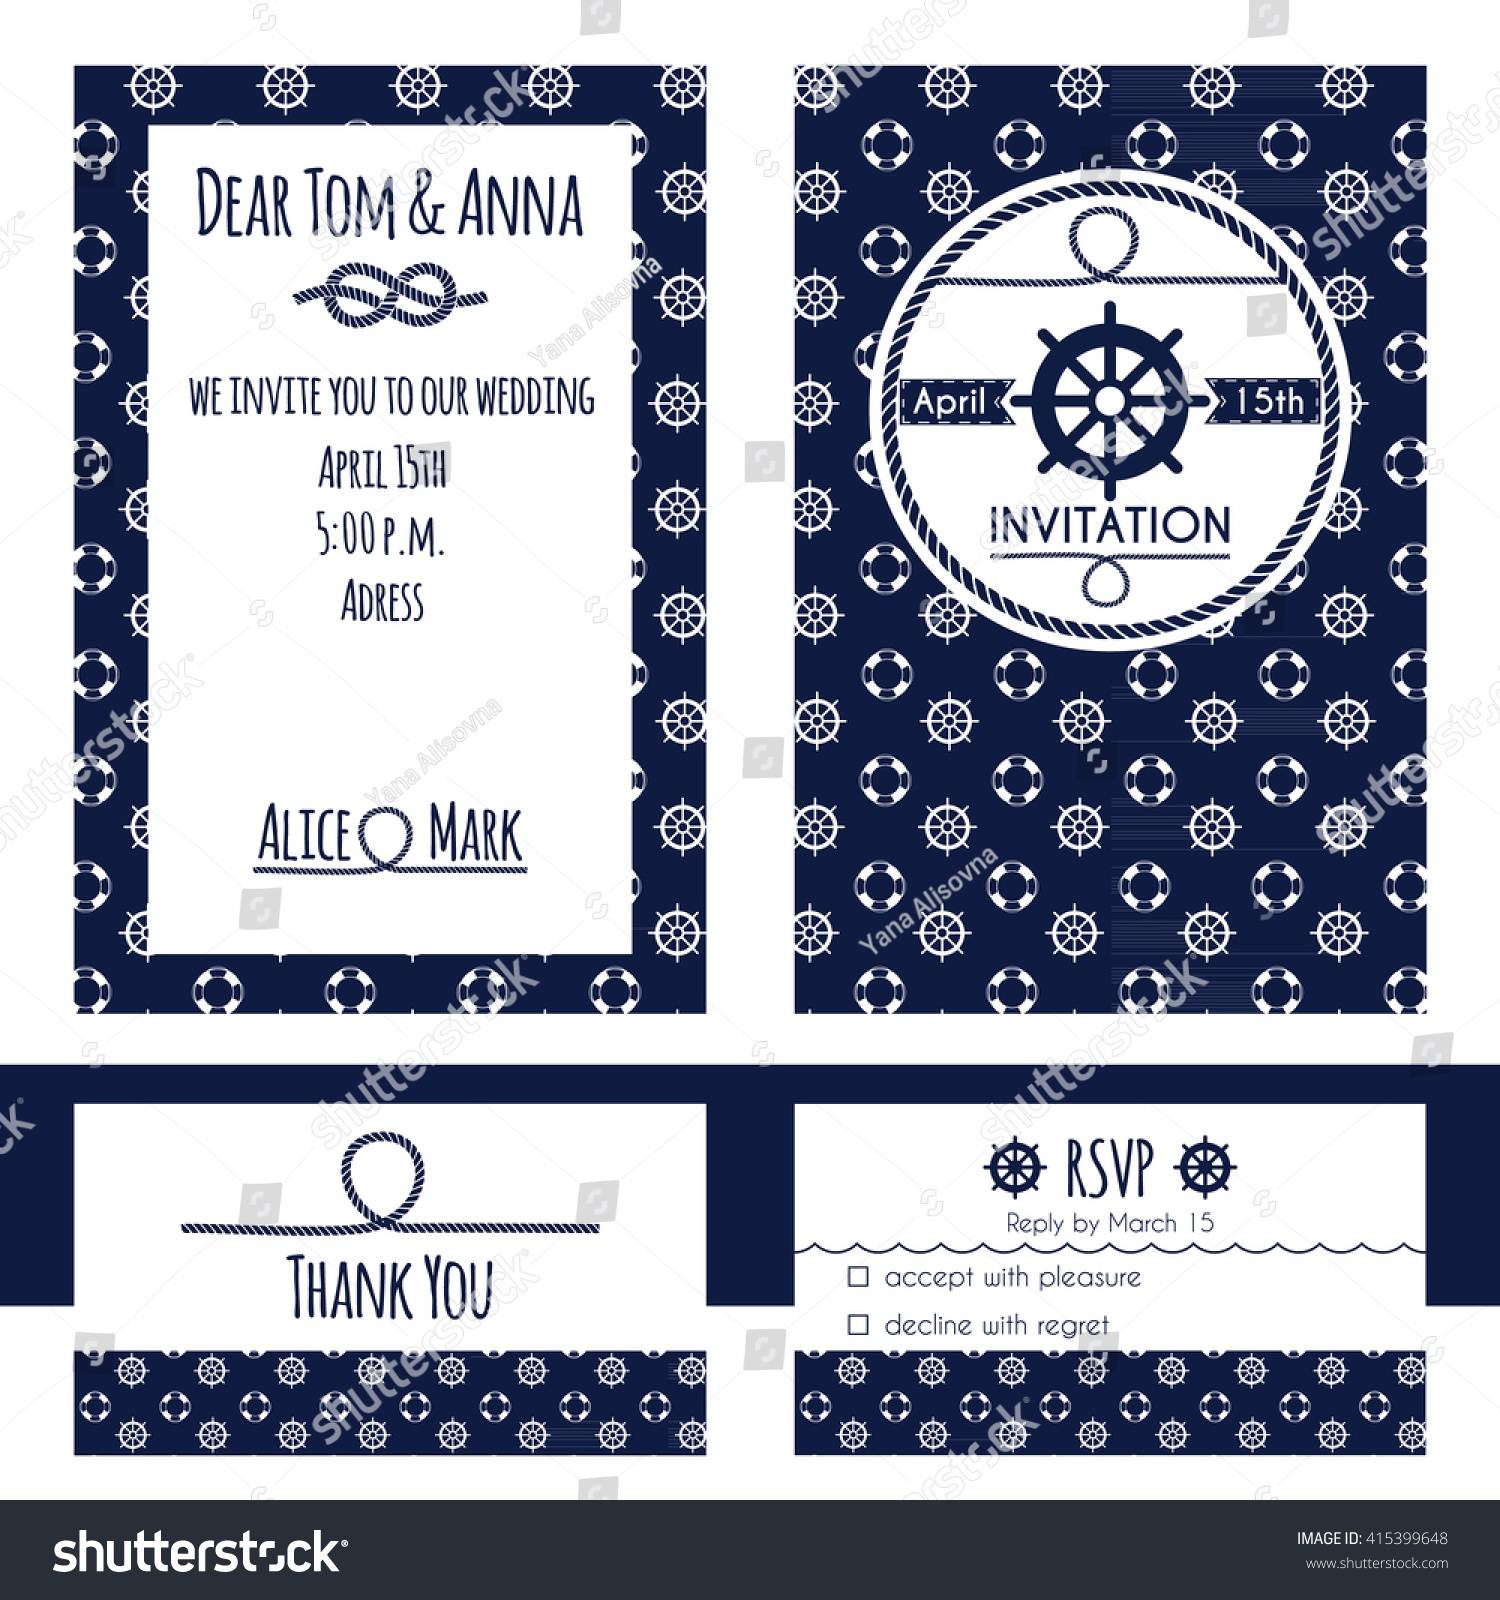 Nautical Wedding Invitation Template Free